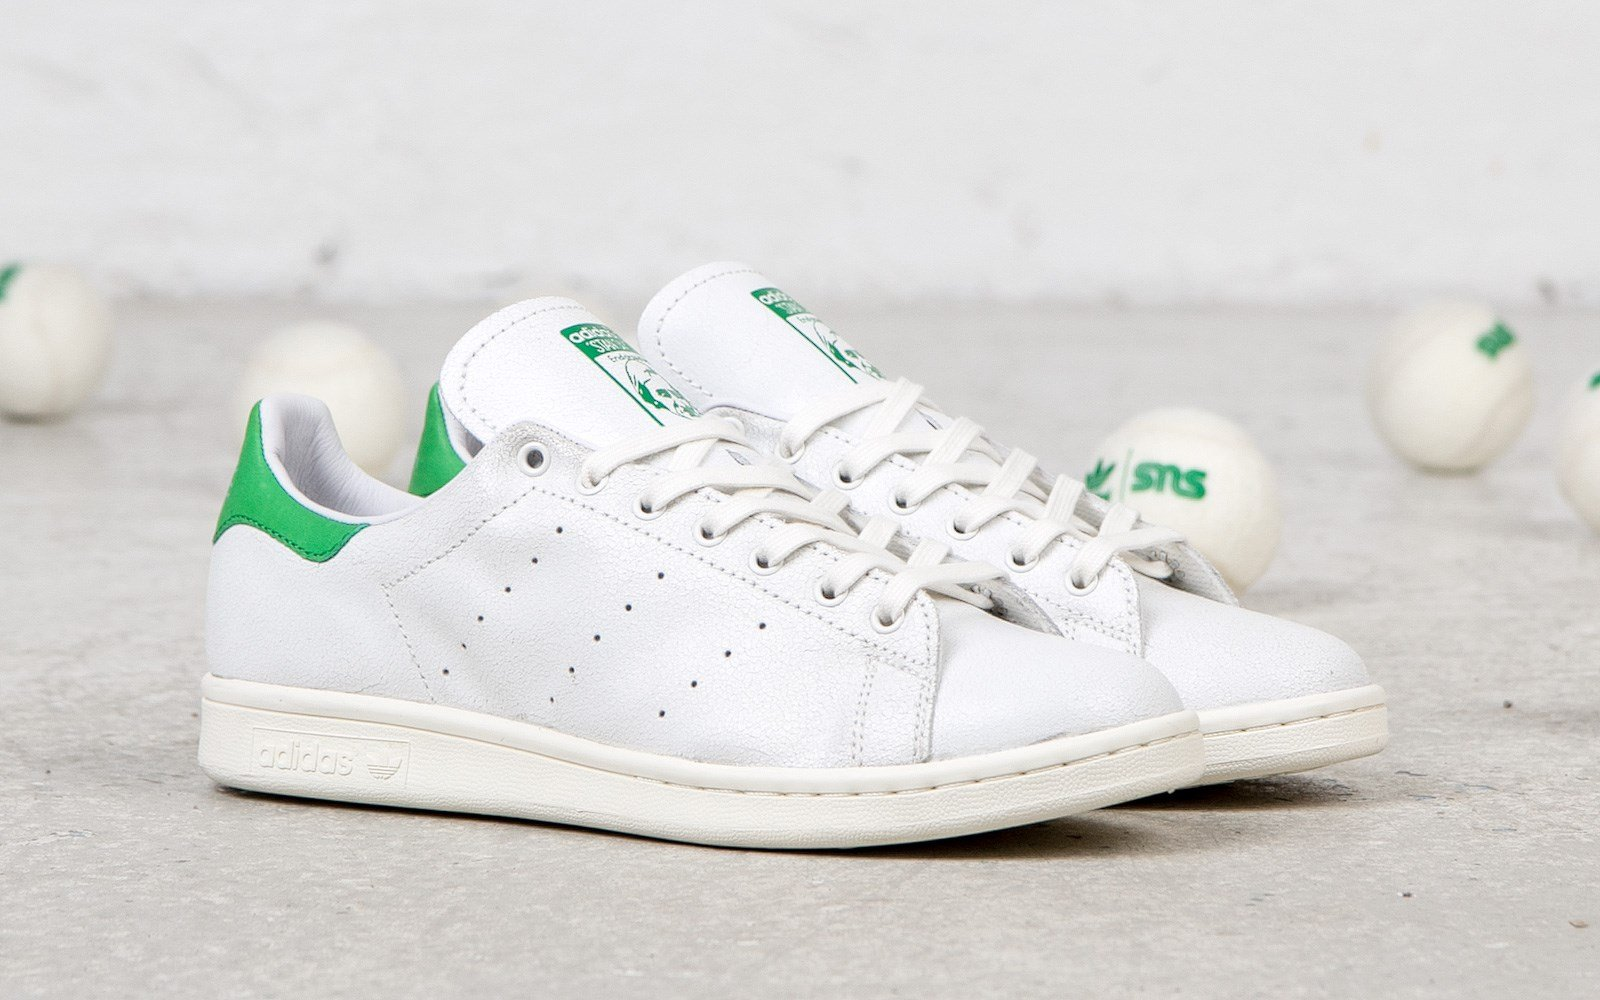 adidas-originals-consortium-stan-smith-cracked-leather-detailed-images-1